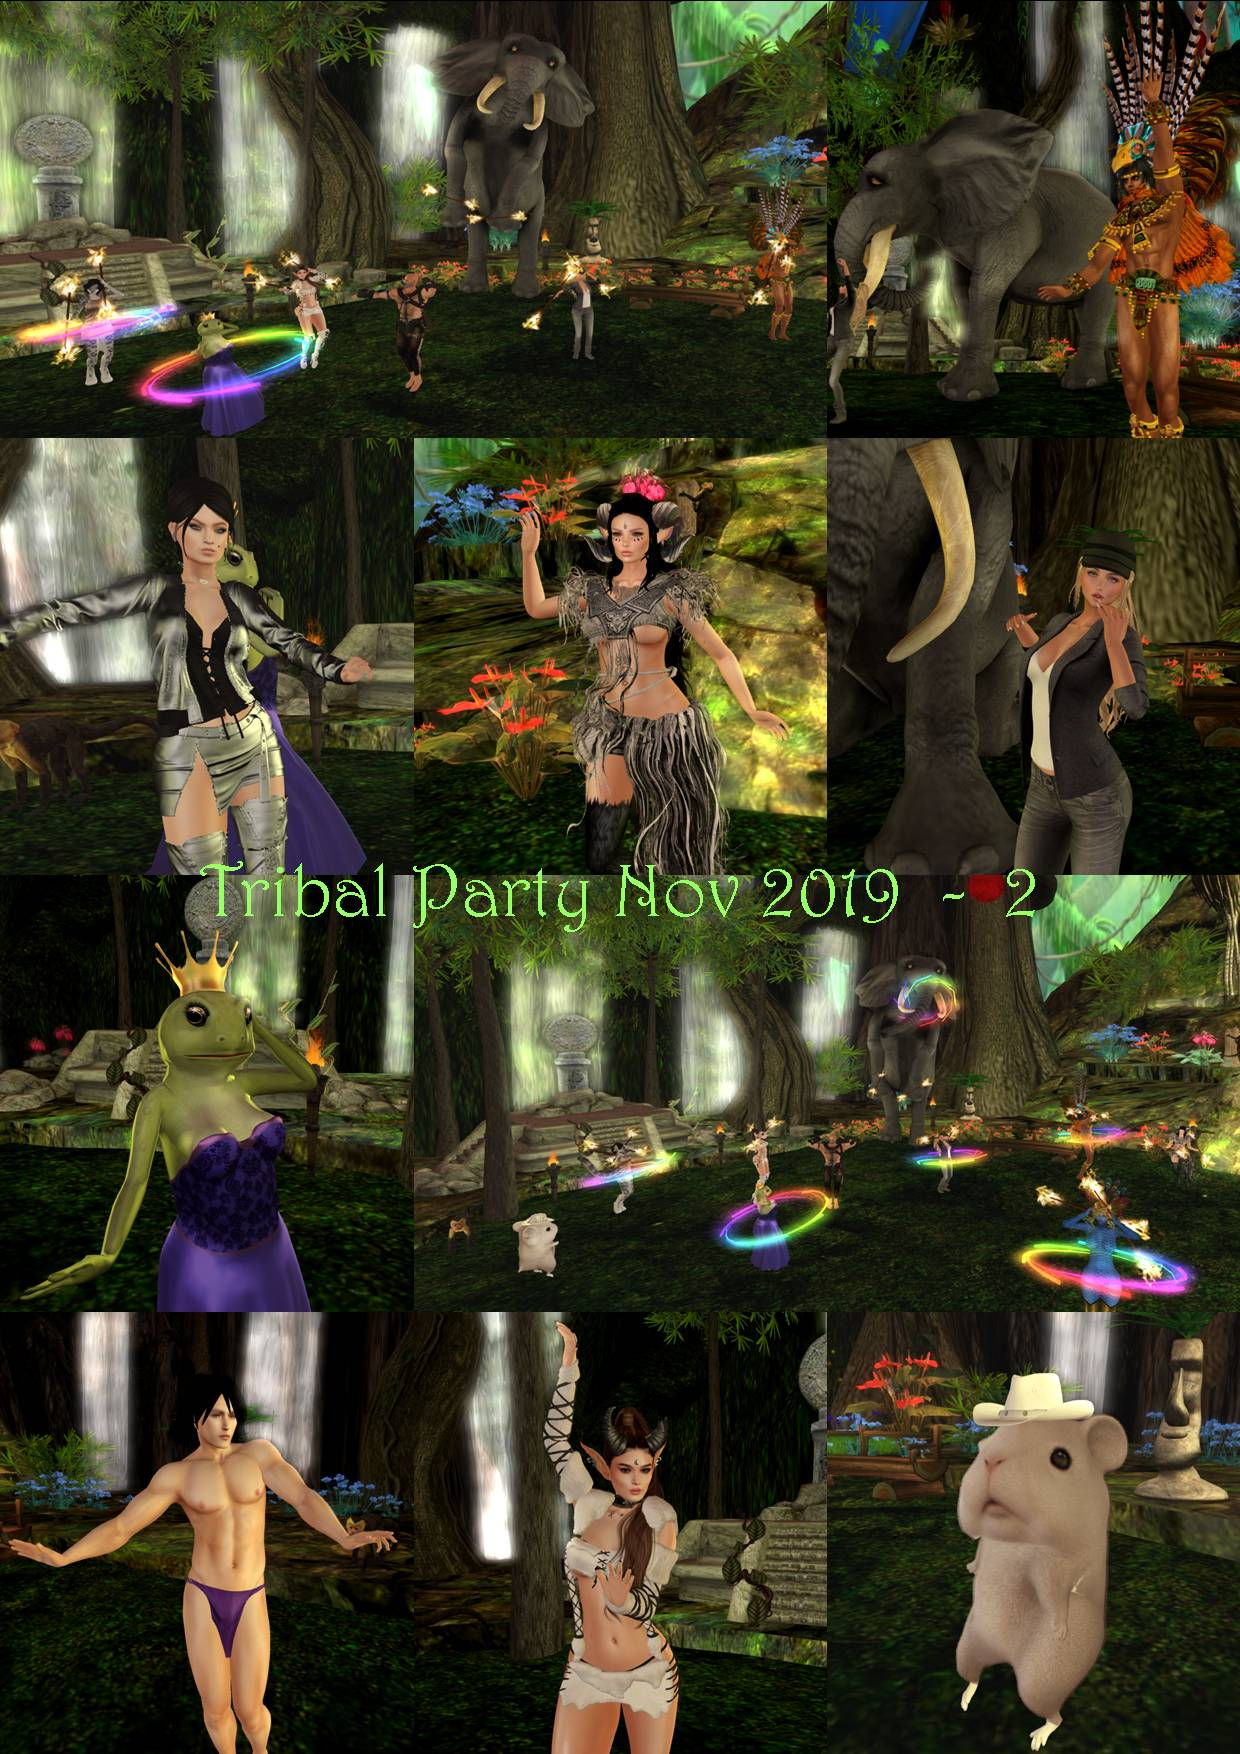 TRIBAL PARTY COLLAGE NOV 2019 - 2